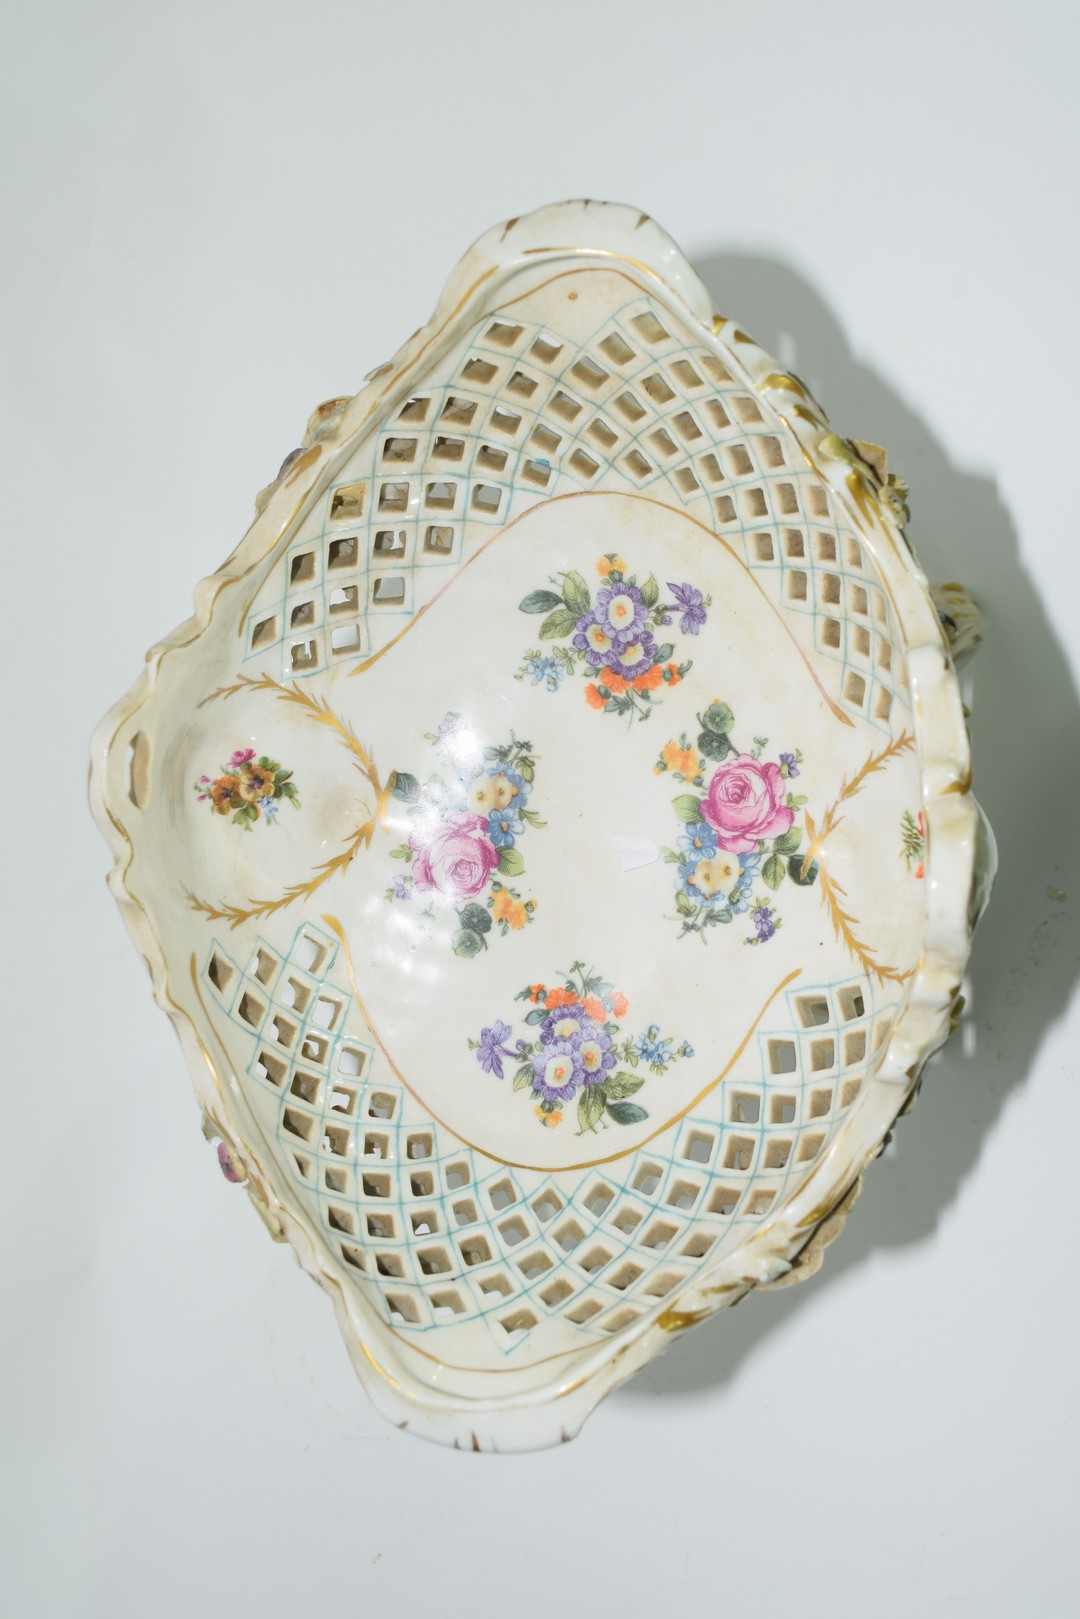 Continental Meissen style porcelain centrepiece - Image 5 of 6